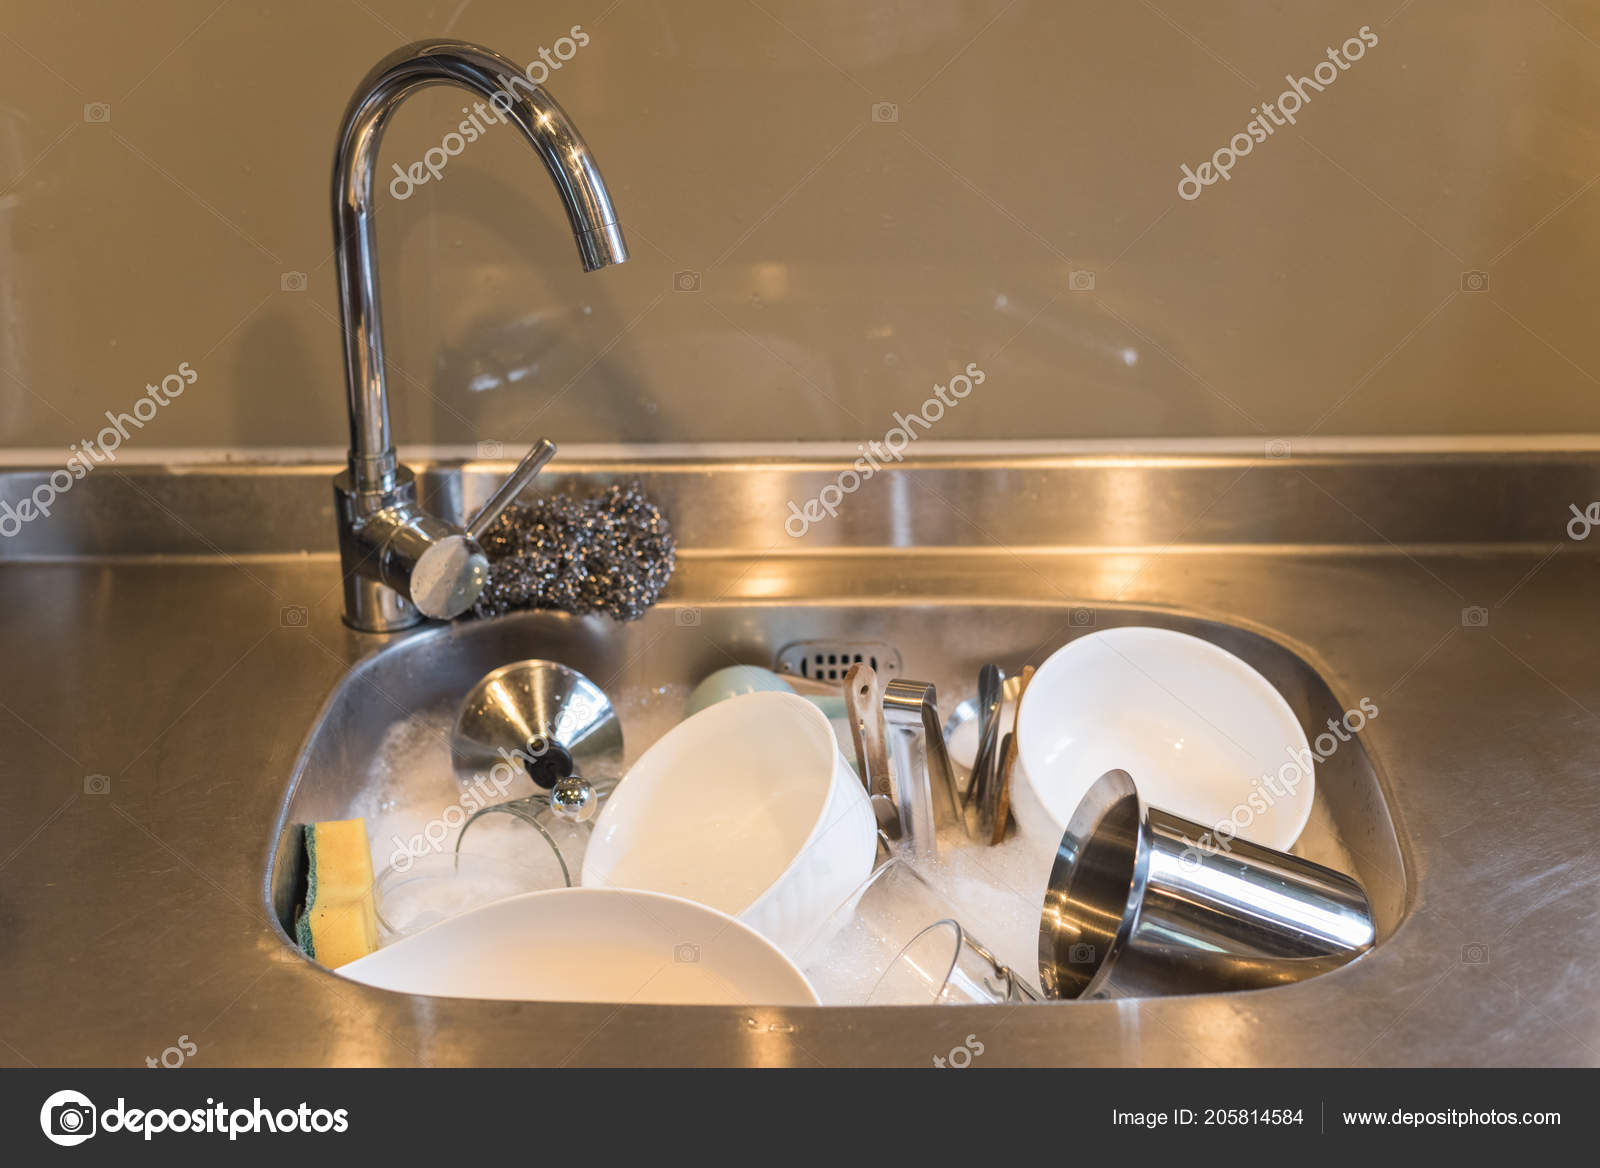 Dirty Dishes Kitchen Sink Water Home — Stock Photo © elwynn #205814584